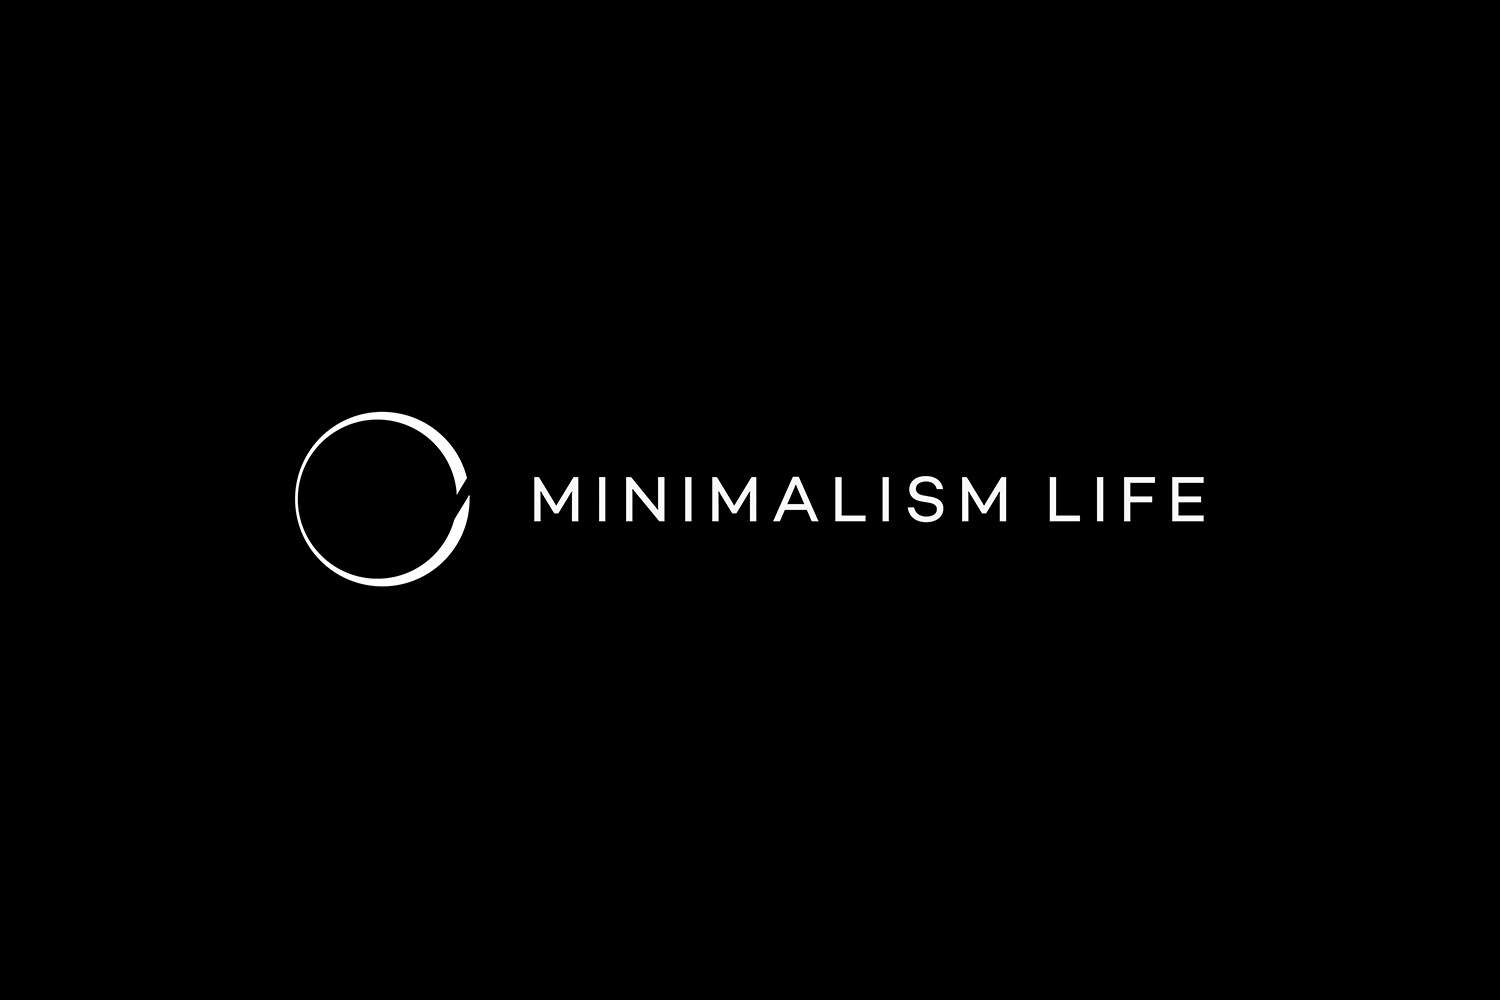 Minimalism life the minimalists for Minimalist lifestyle